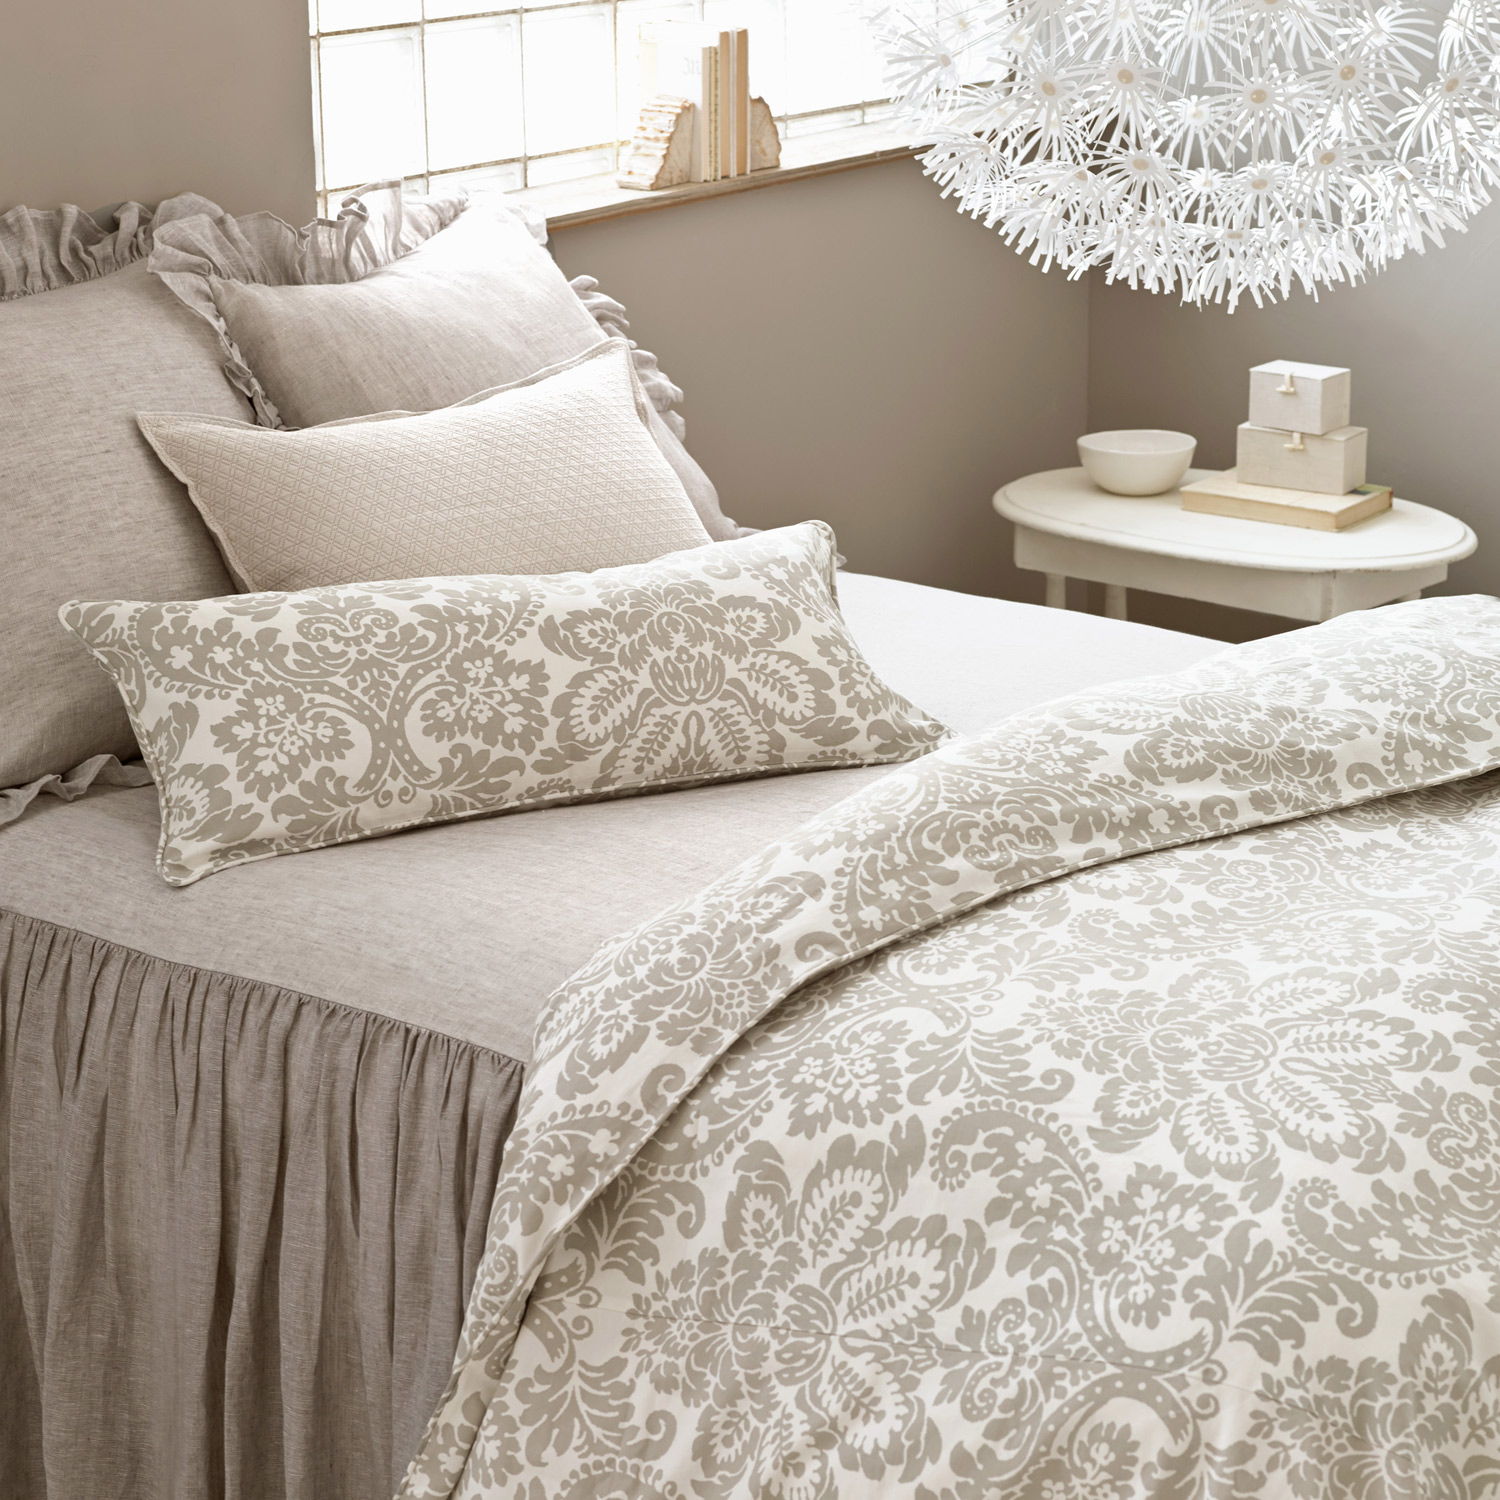 Extraordinary damask bedding for bed decorating ideas with damask bedding set and damask crib bedding